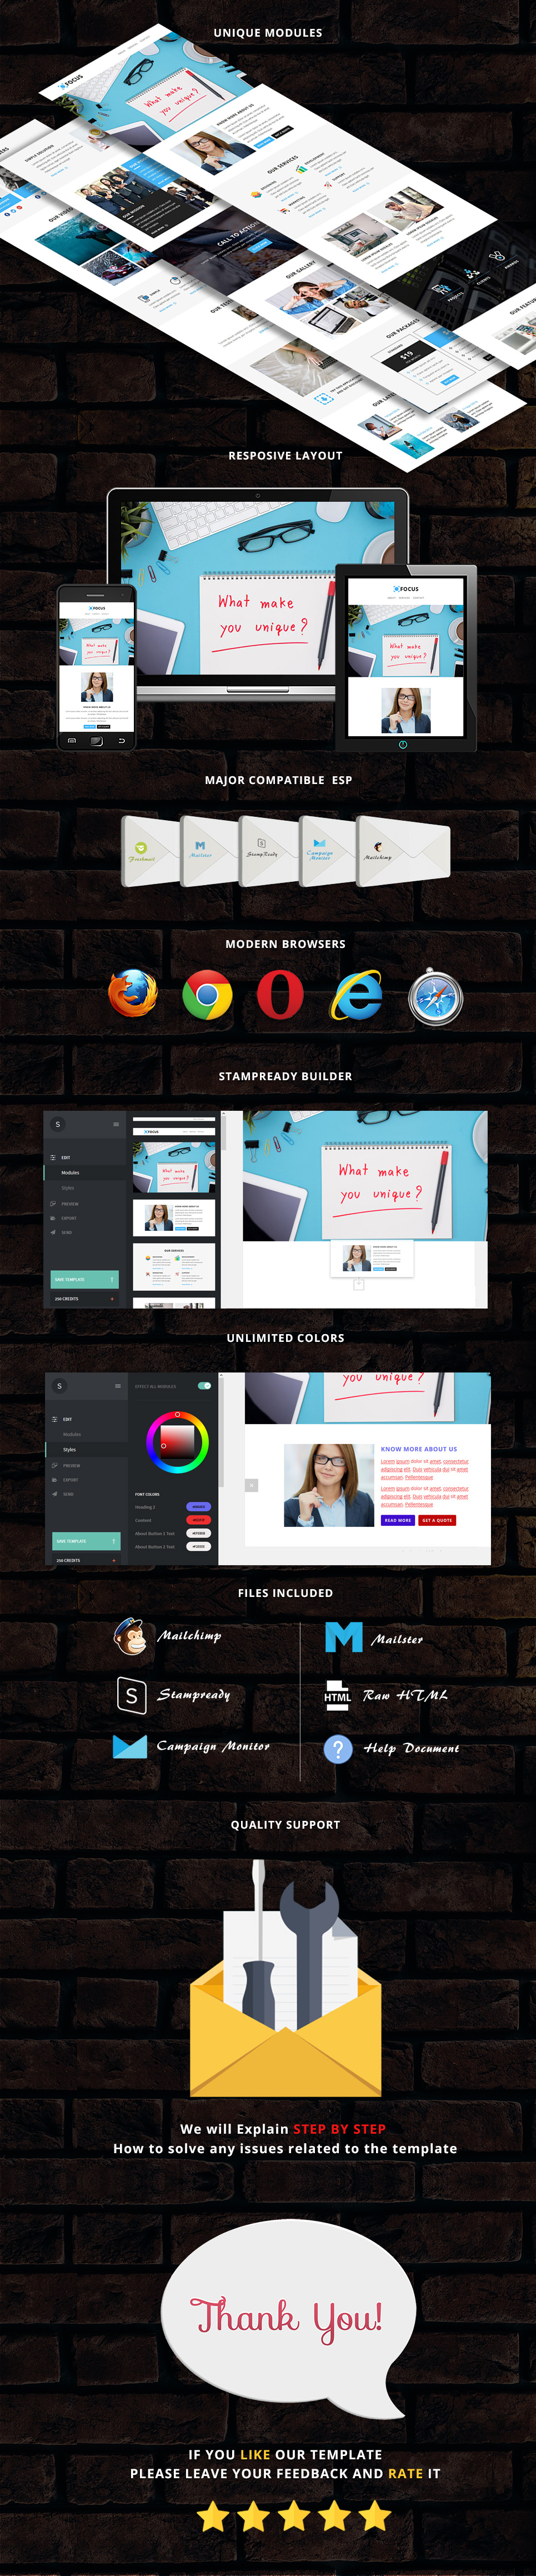 focus - Responsive Email Template + Stampready Builder